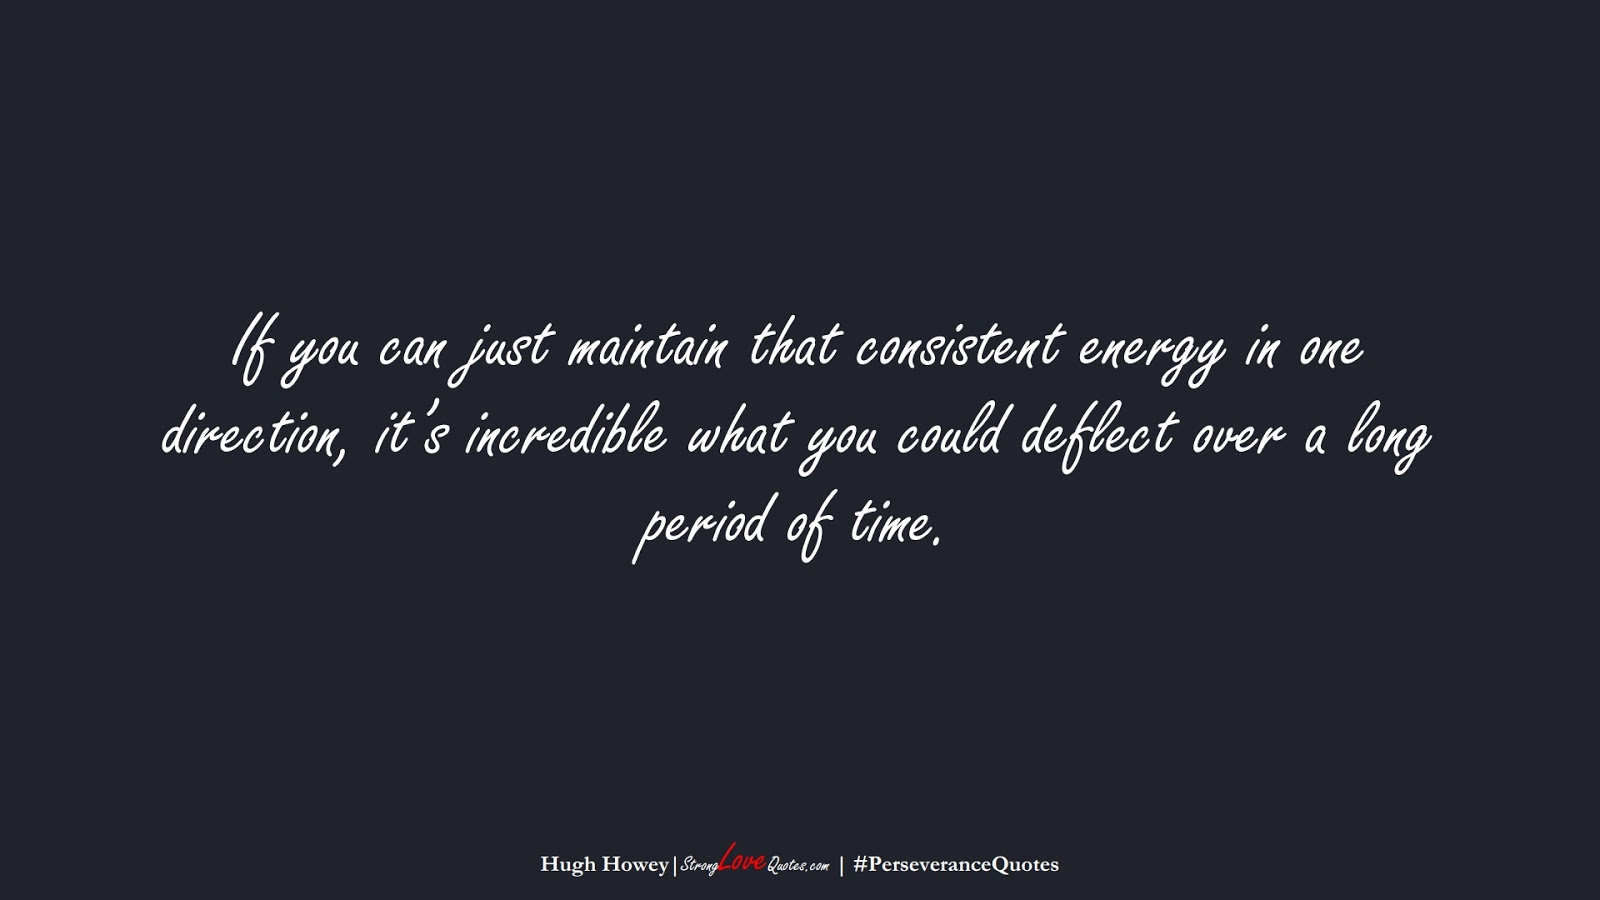 If you can just maintain that consistent energy in one direction, it's incredible what you could deflect over a long period of time. (Hugh Howey);  #PerseveranceQuotes